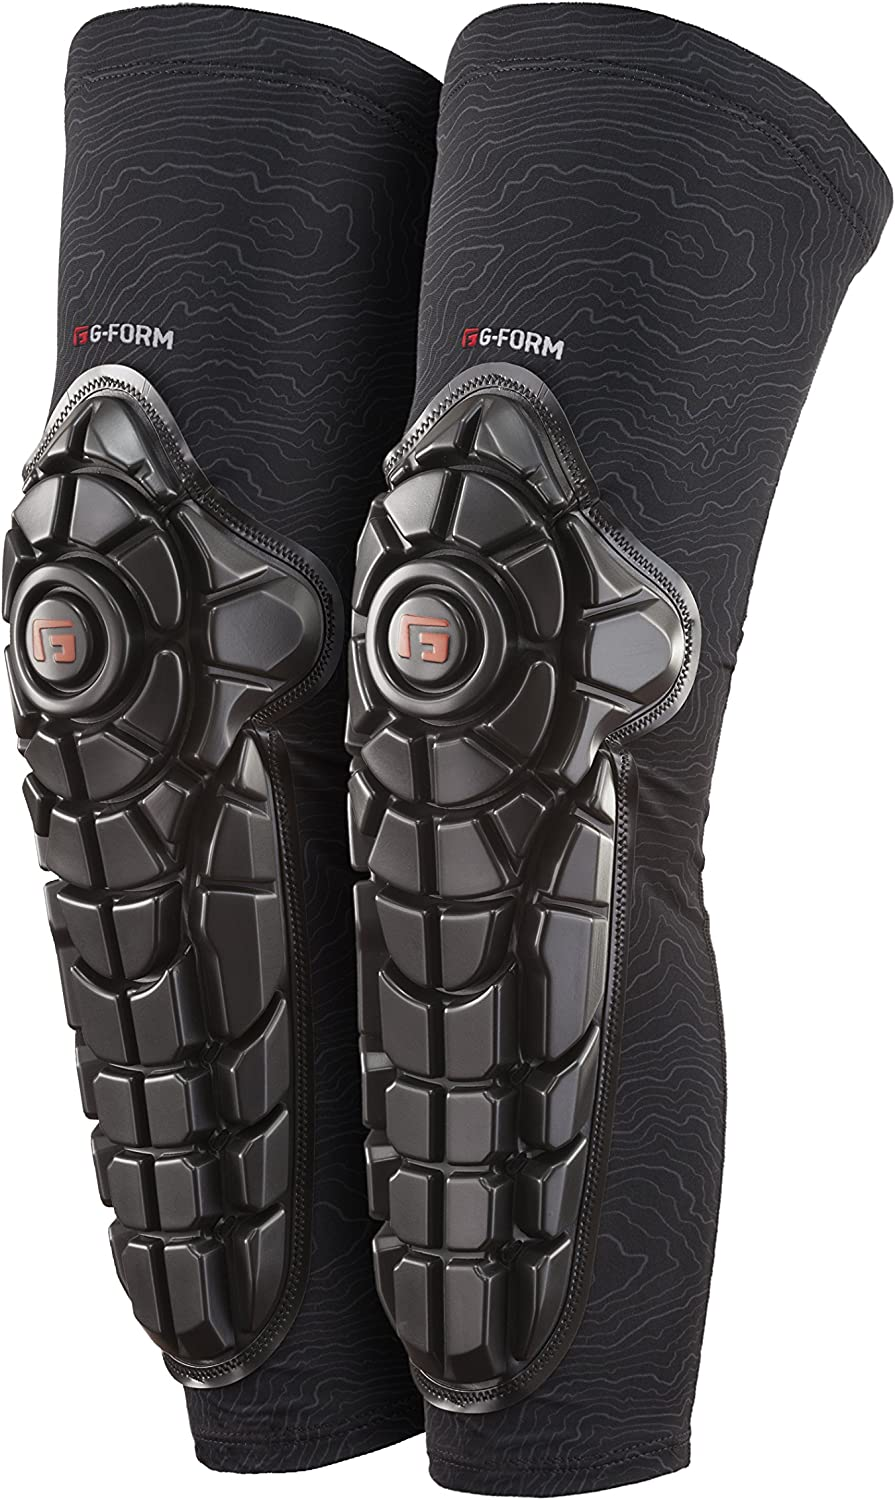 G-Form Elite Elbow Guards Size XL Motorcycle or Bicycle Pads New